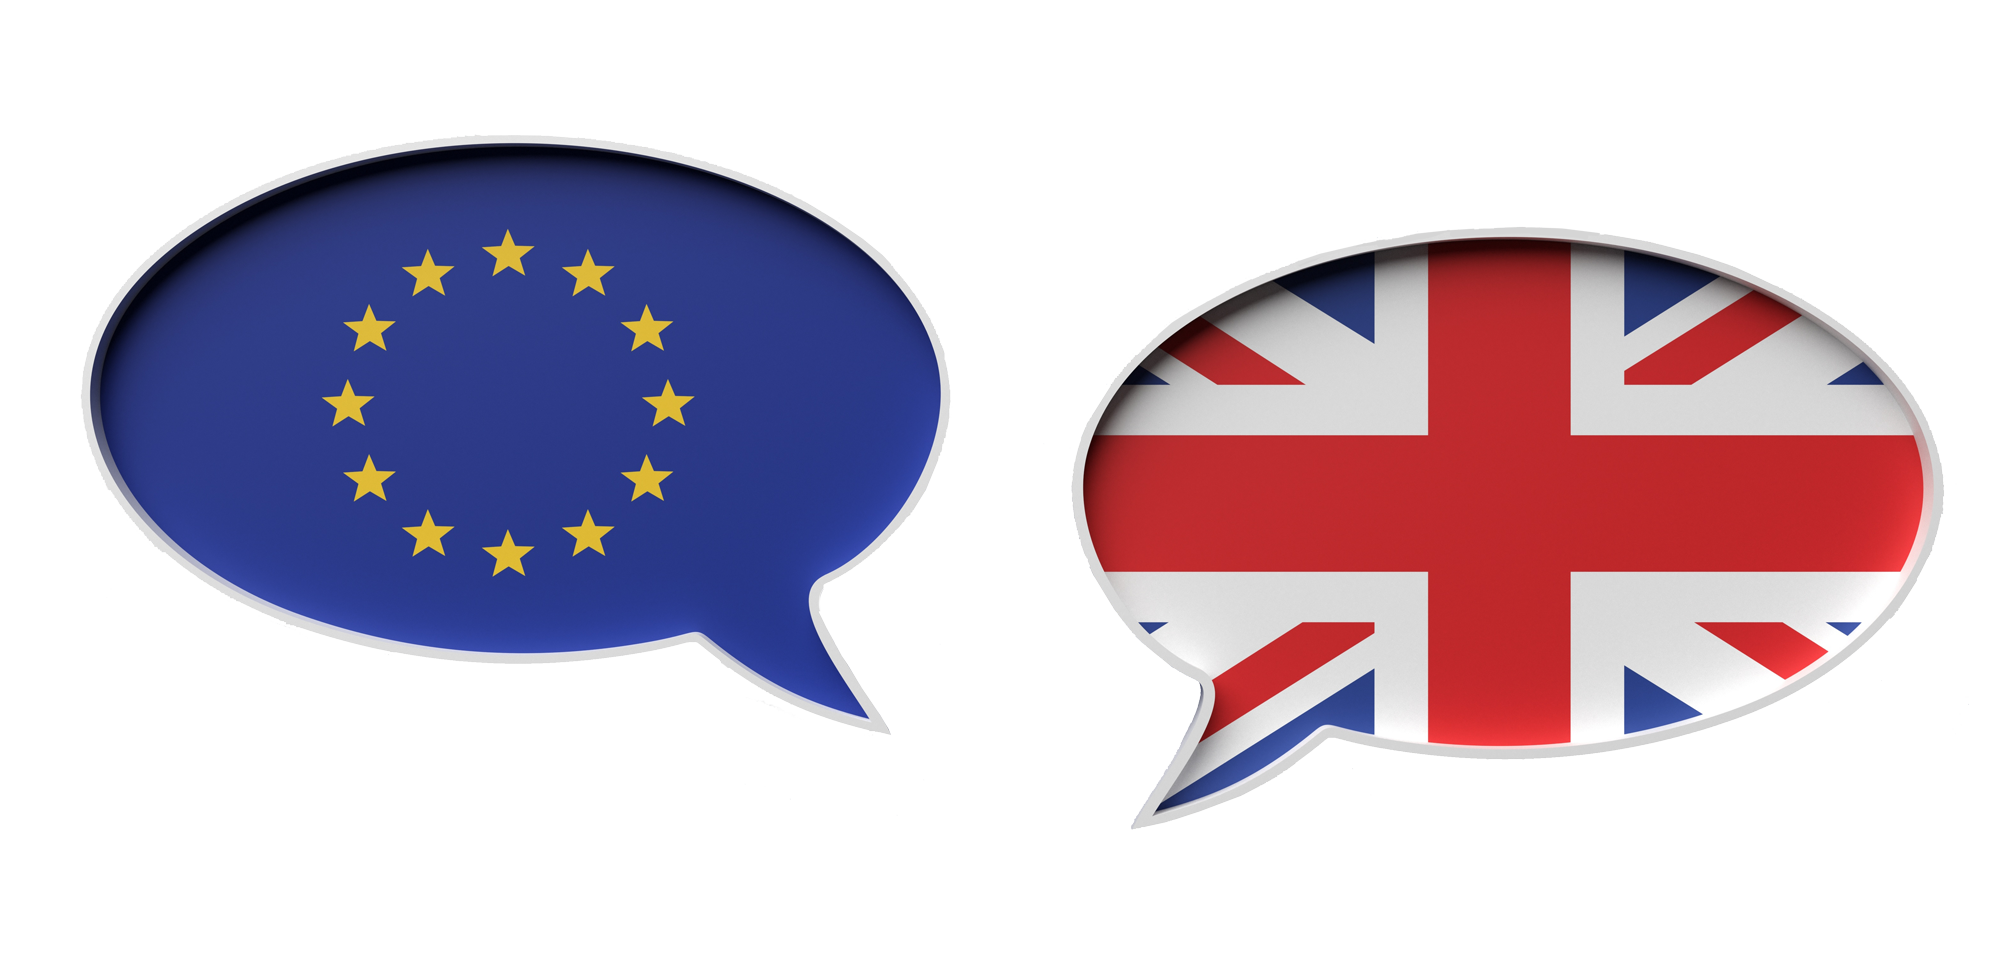 The European and British flags each sit in a floating speech bibble on a blue background